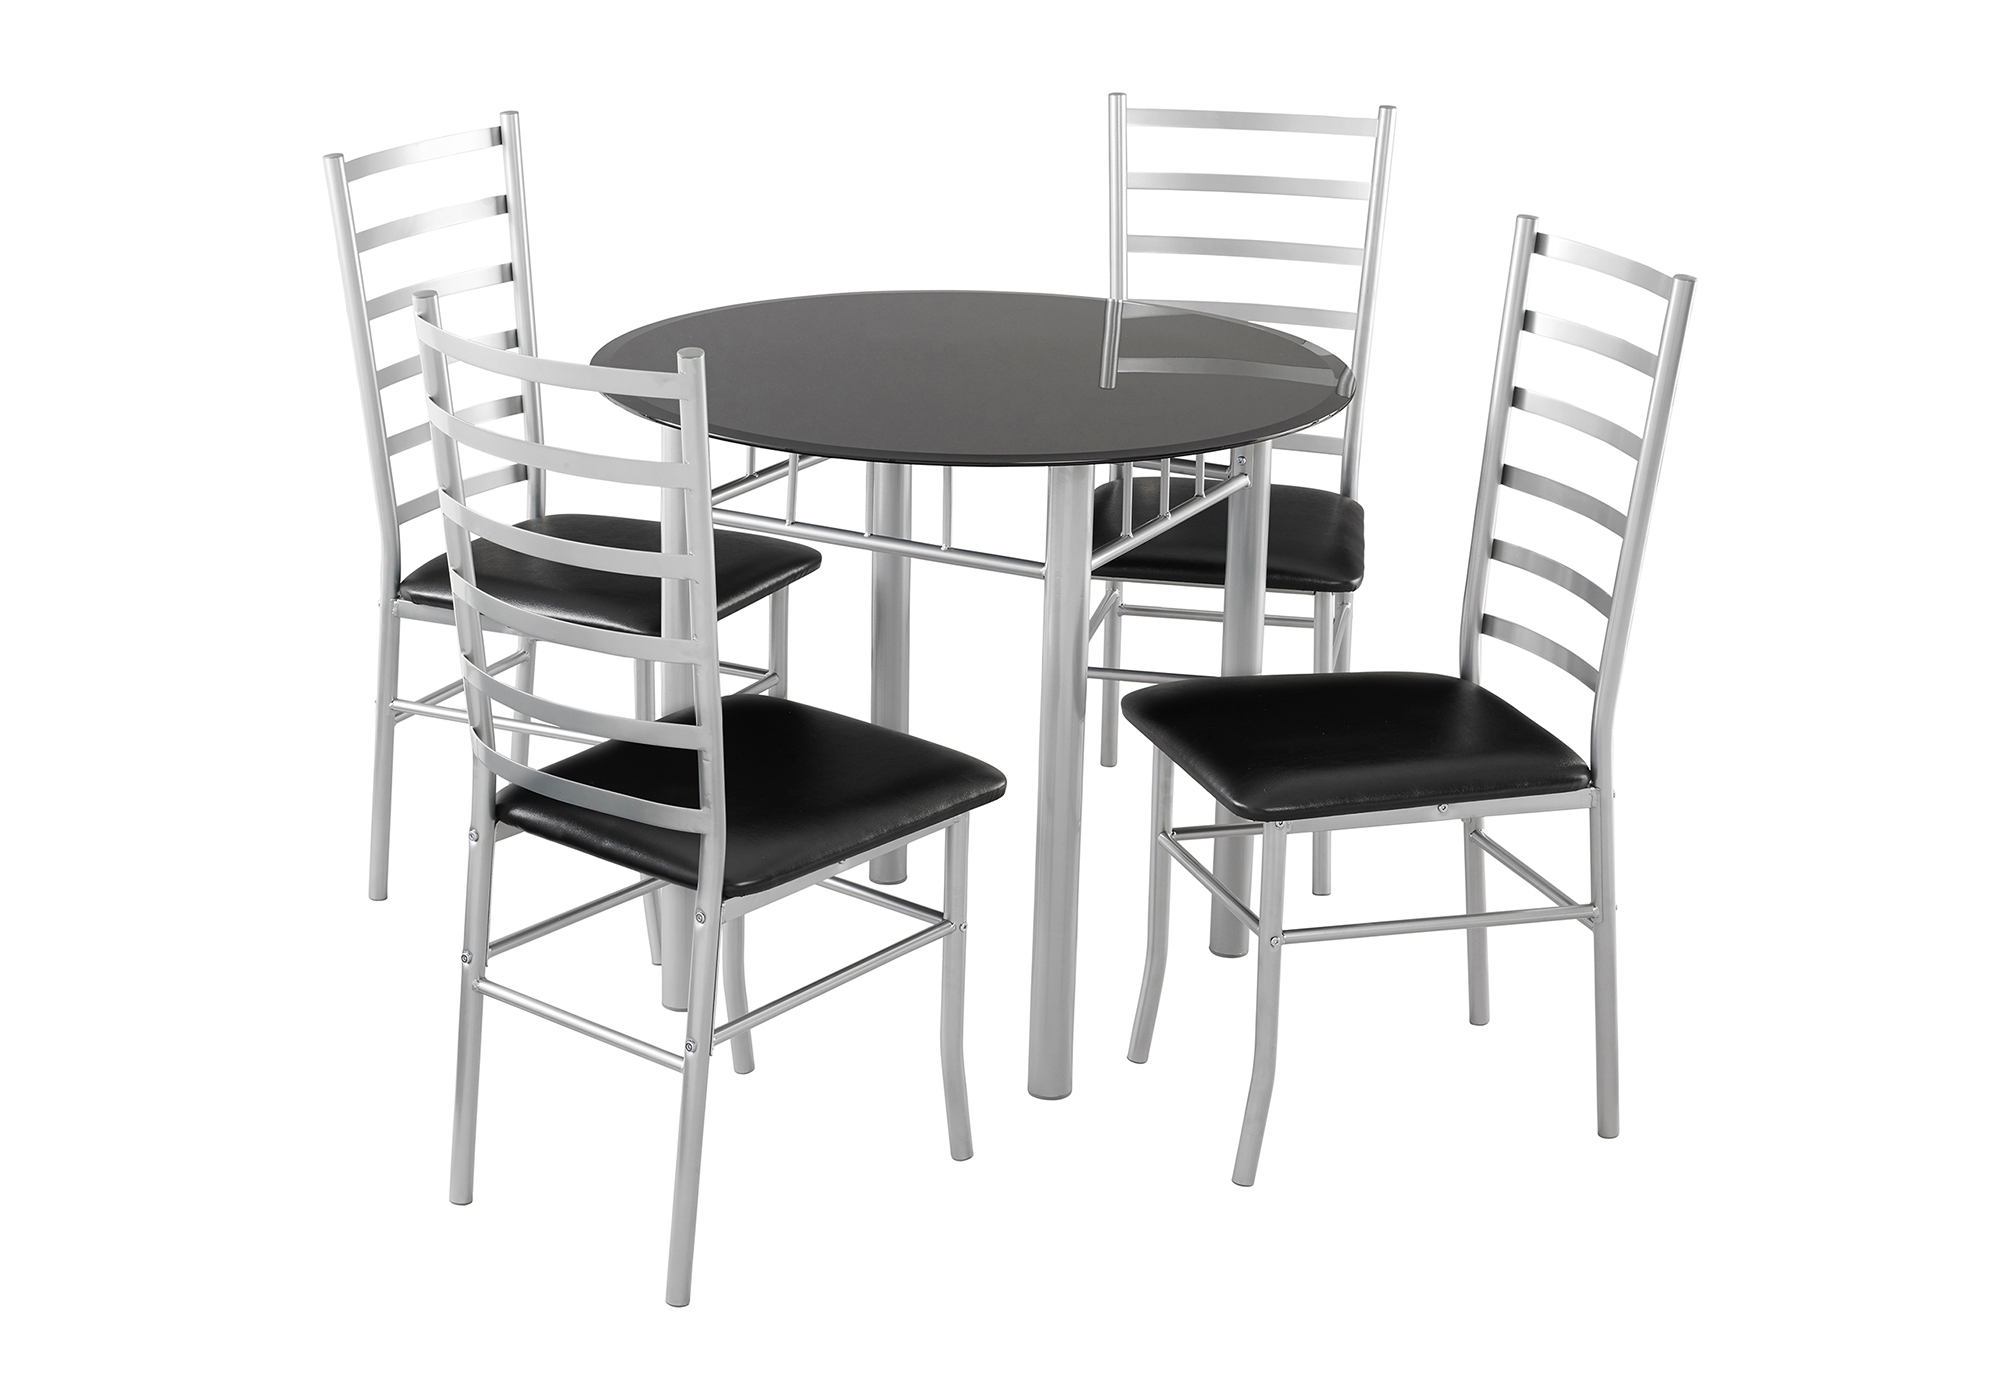 2017 Lincoln Dining Set 4 Seater – Black Glass Dining Table & 4 Chairs Intended For Black Glass Dining Tables (Gallery 10 of 25)